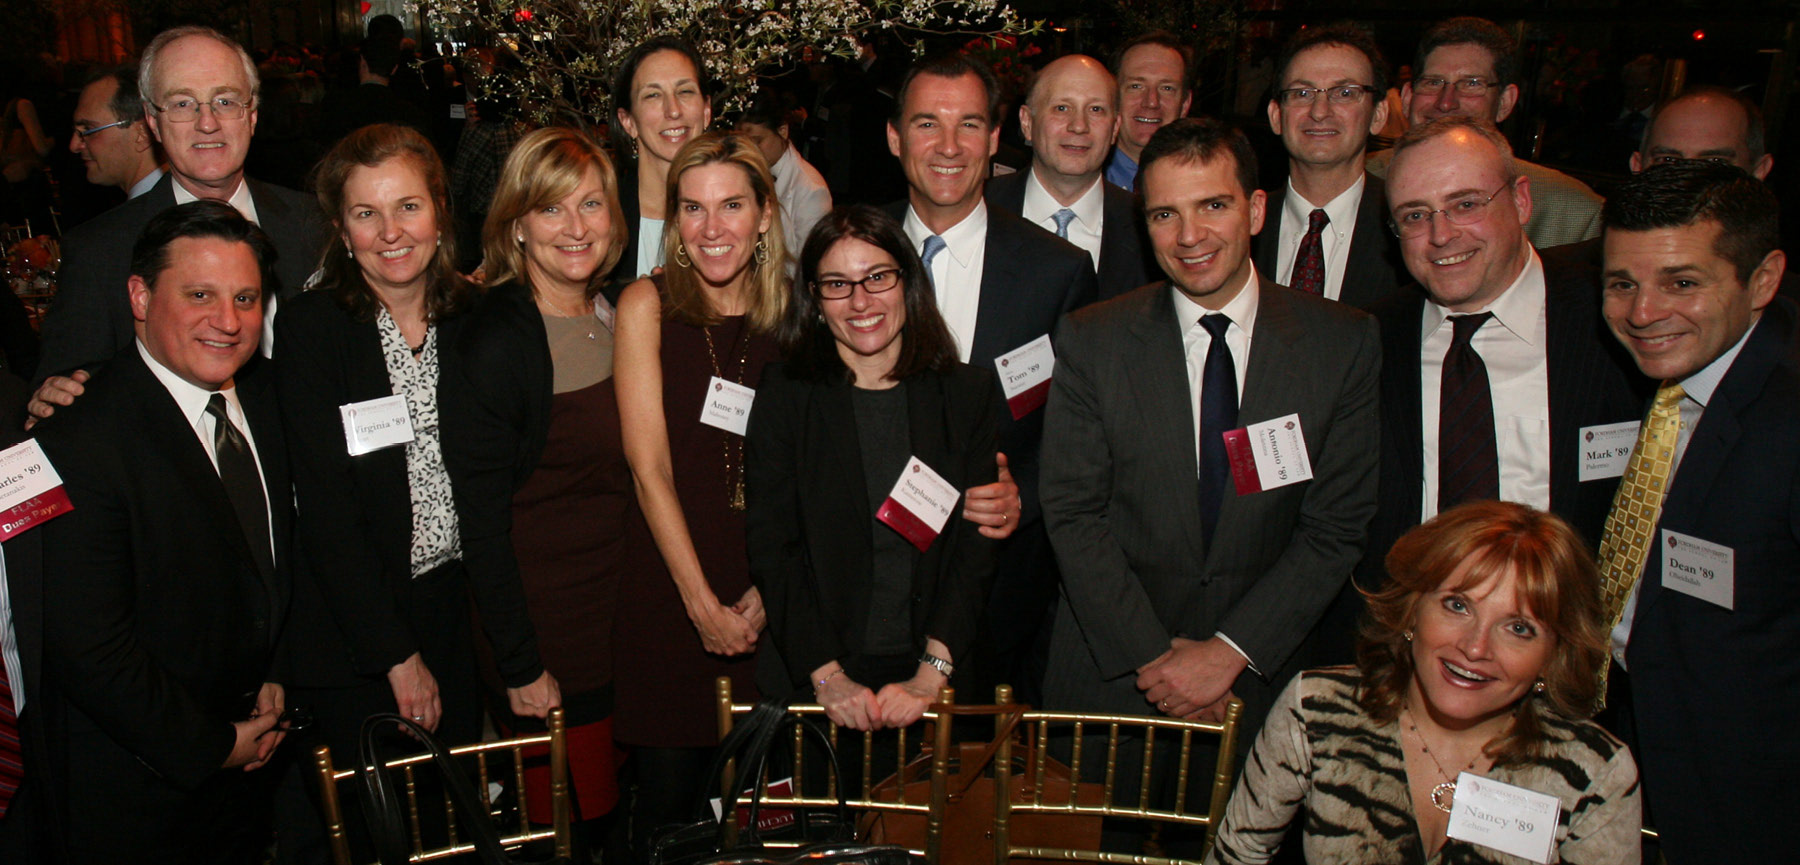 Members of the Class of 1989 at the Fordham Law Alumni Association Annual Luncheon